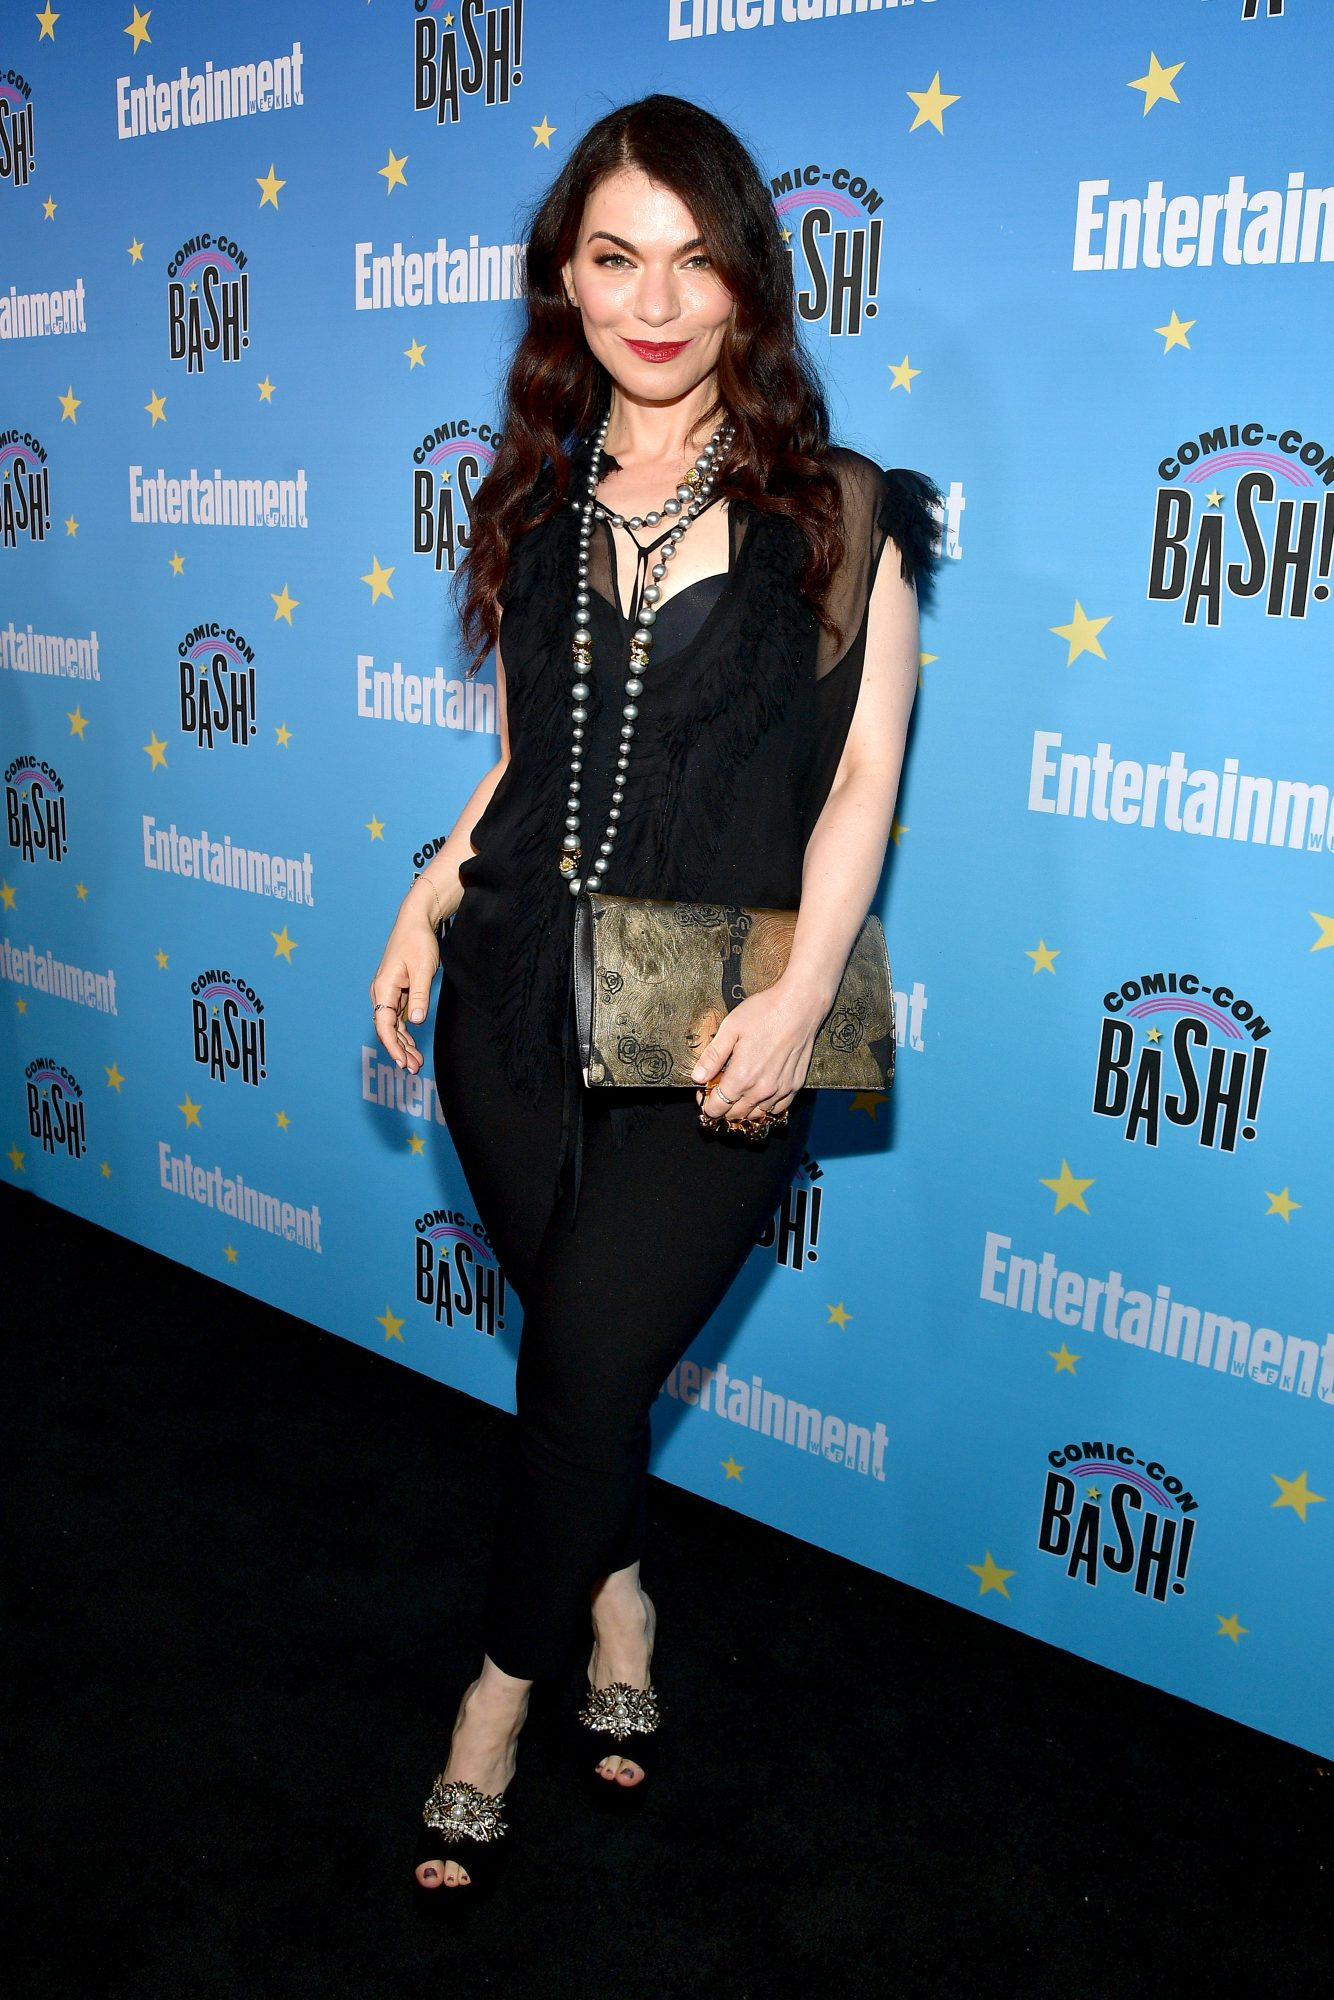 SAN DIEGO, CALIFORNIA - JULY 20: Julianna Margulies attends Entertainment Weekly's Comic-Con Bash held at FLOAT, Hard Rock Hotel San Diego on July 20, 2019 in San Diego, California sponsored by HBO. (Photo by Matt Winkelmeyer/Getty Images for Entertainment Weekly)